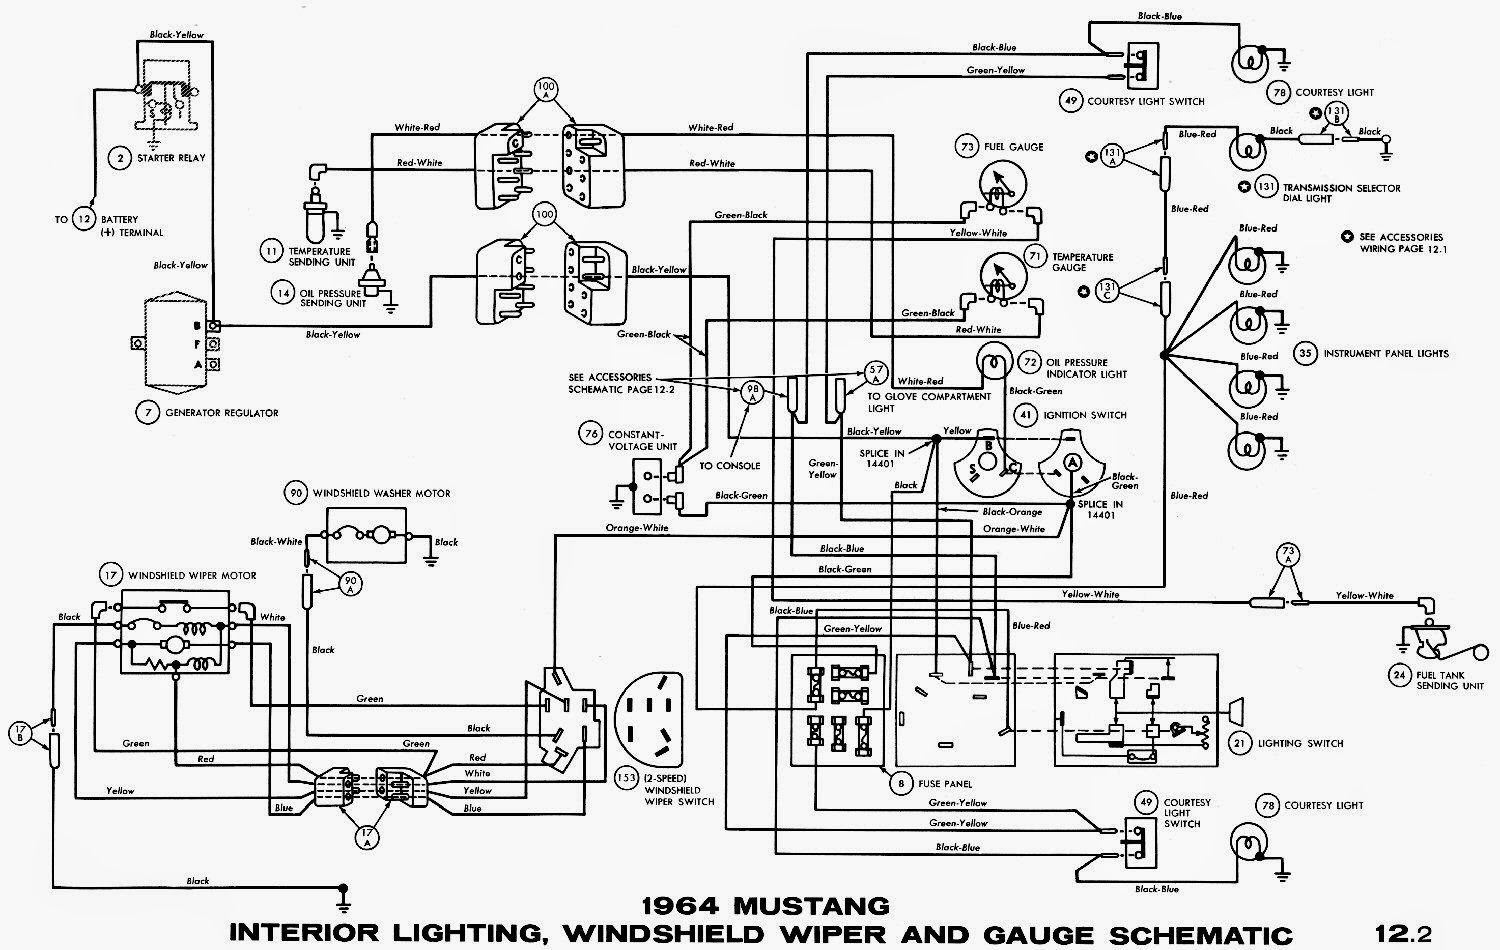 1964 Buick Lesabre Wiring Diagram Wiring Diagram